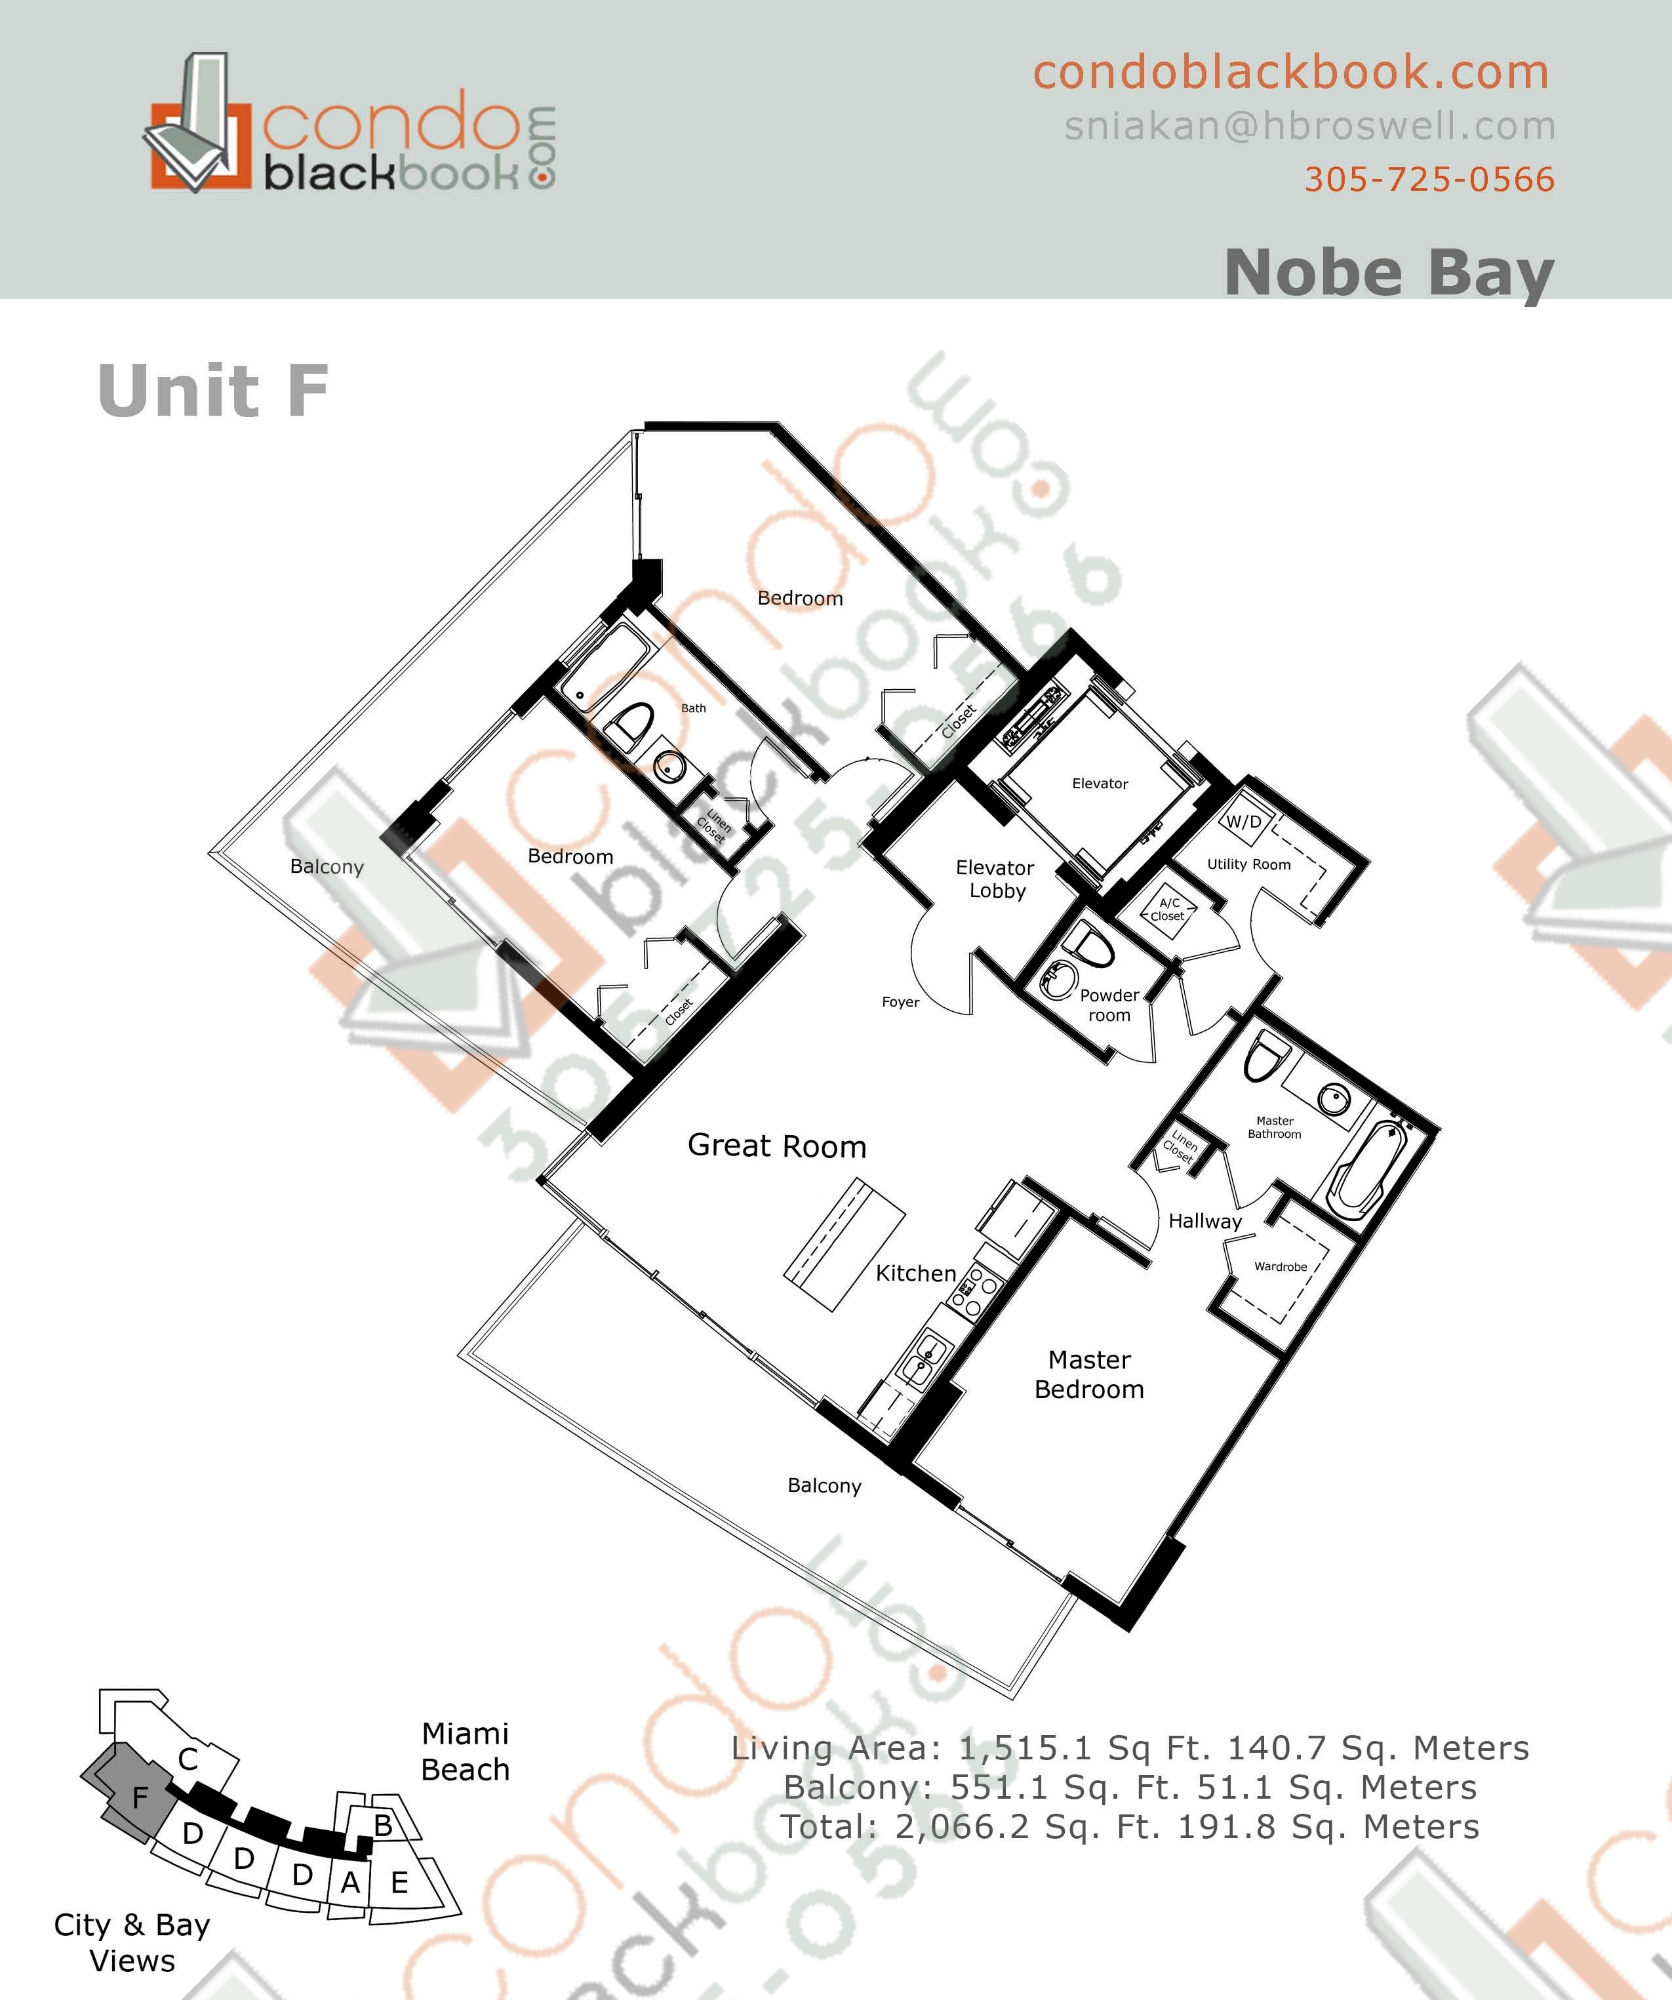 Floor plan for Eden House North Beach Miami Beach, model F, line 06, 3/2.5 bedrooms, 1,515 sq ft